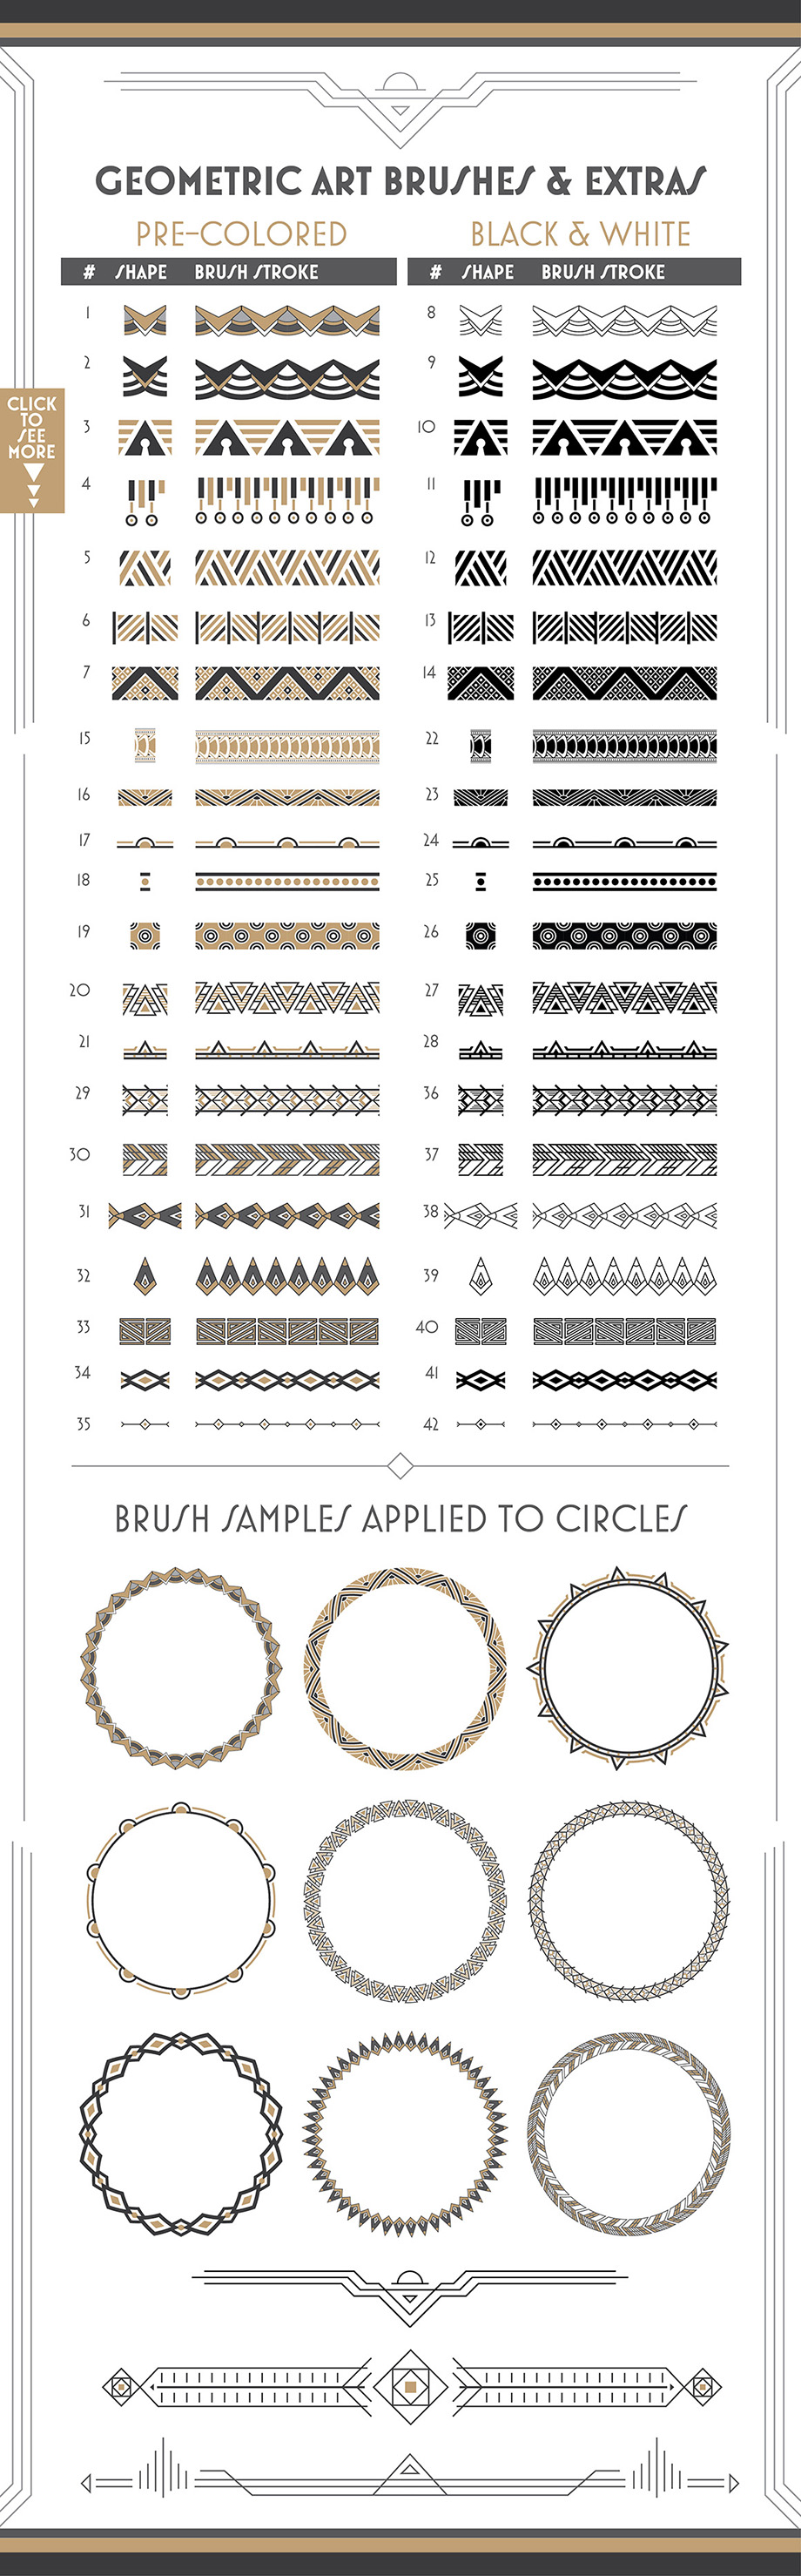 Deco Brushes and Patterns - Creative Market - Slide 4